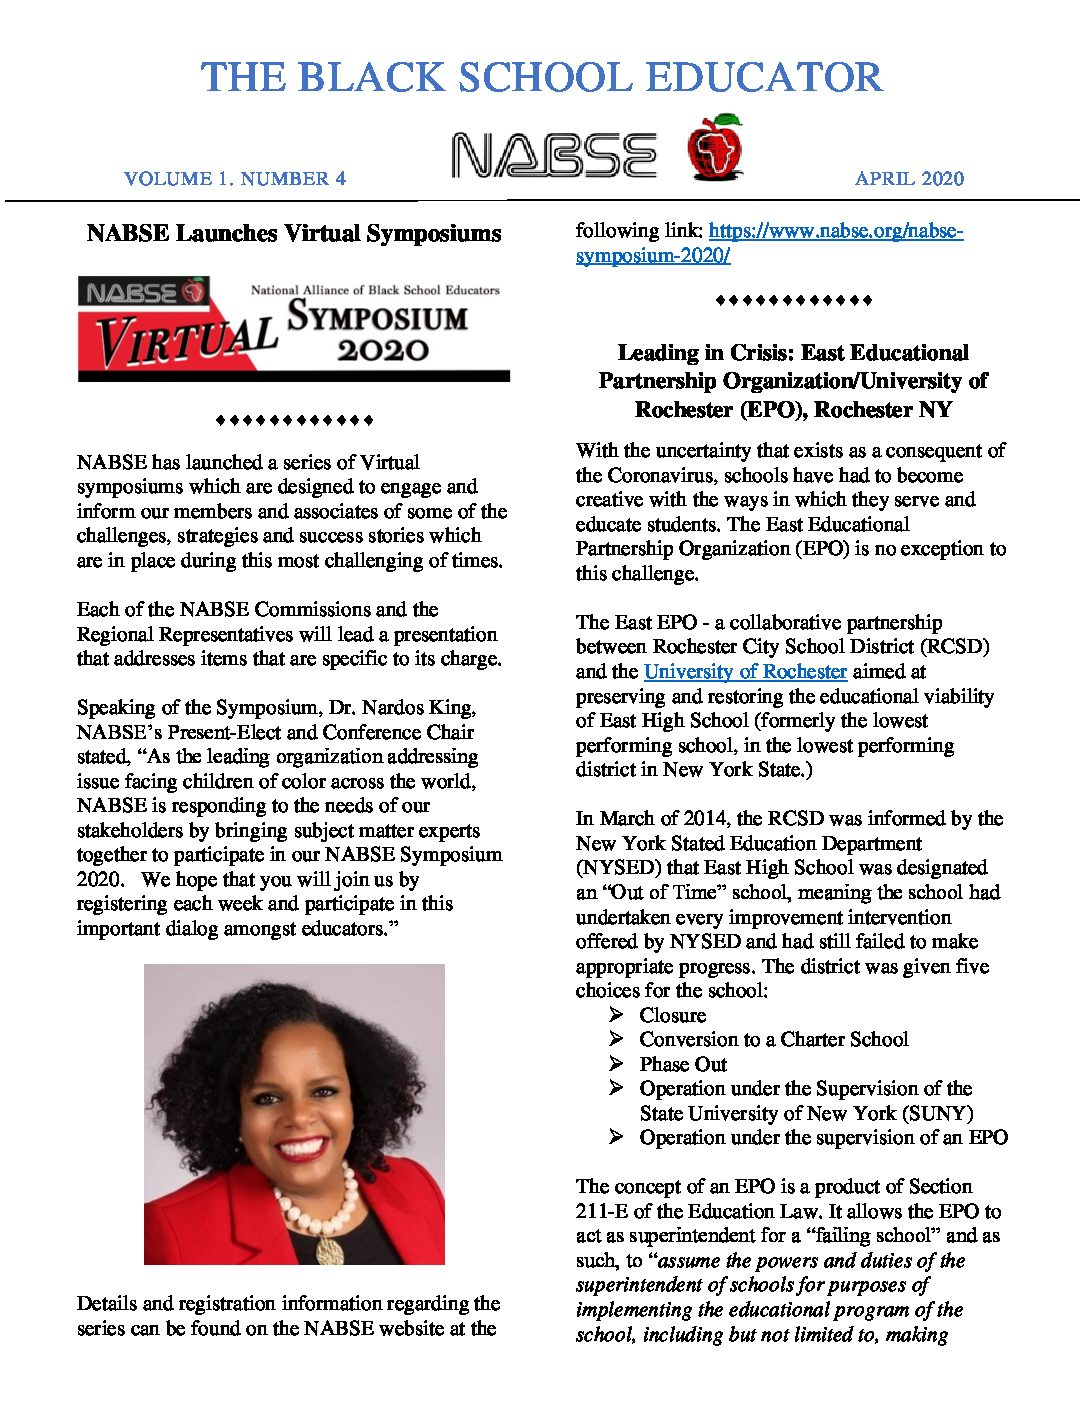 NABSE April 2020 Newsletter